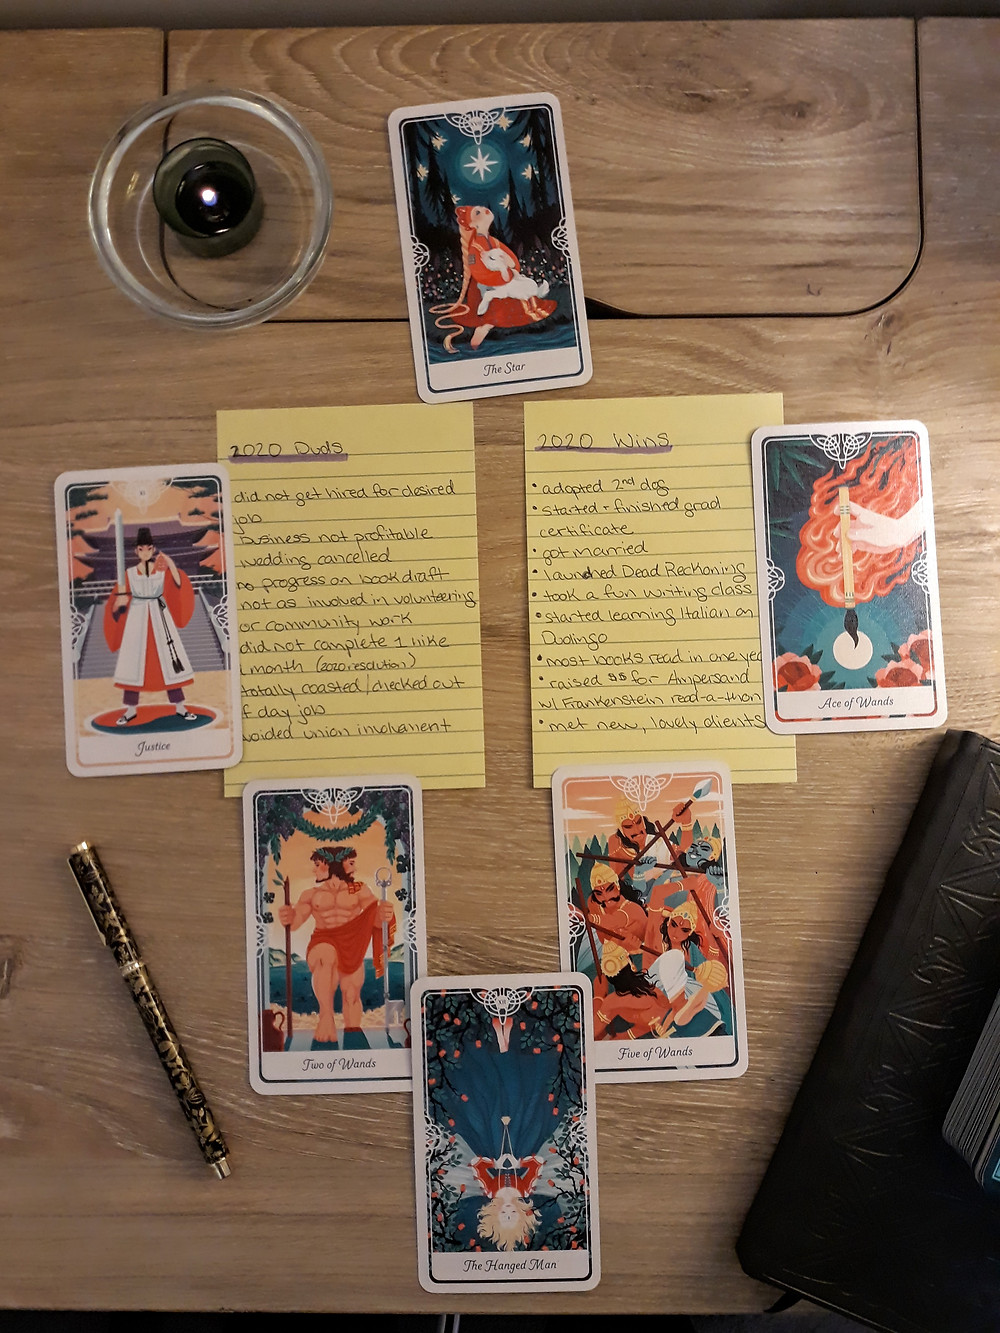 Tarot cards from The Tarot of the Divine deck are arranged in the 2020 Reflection Tarot Spread.